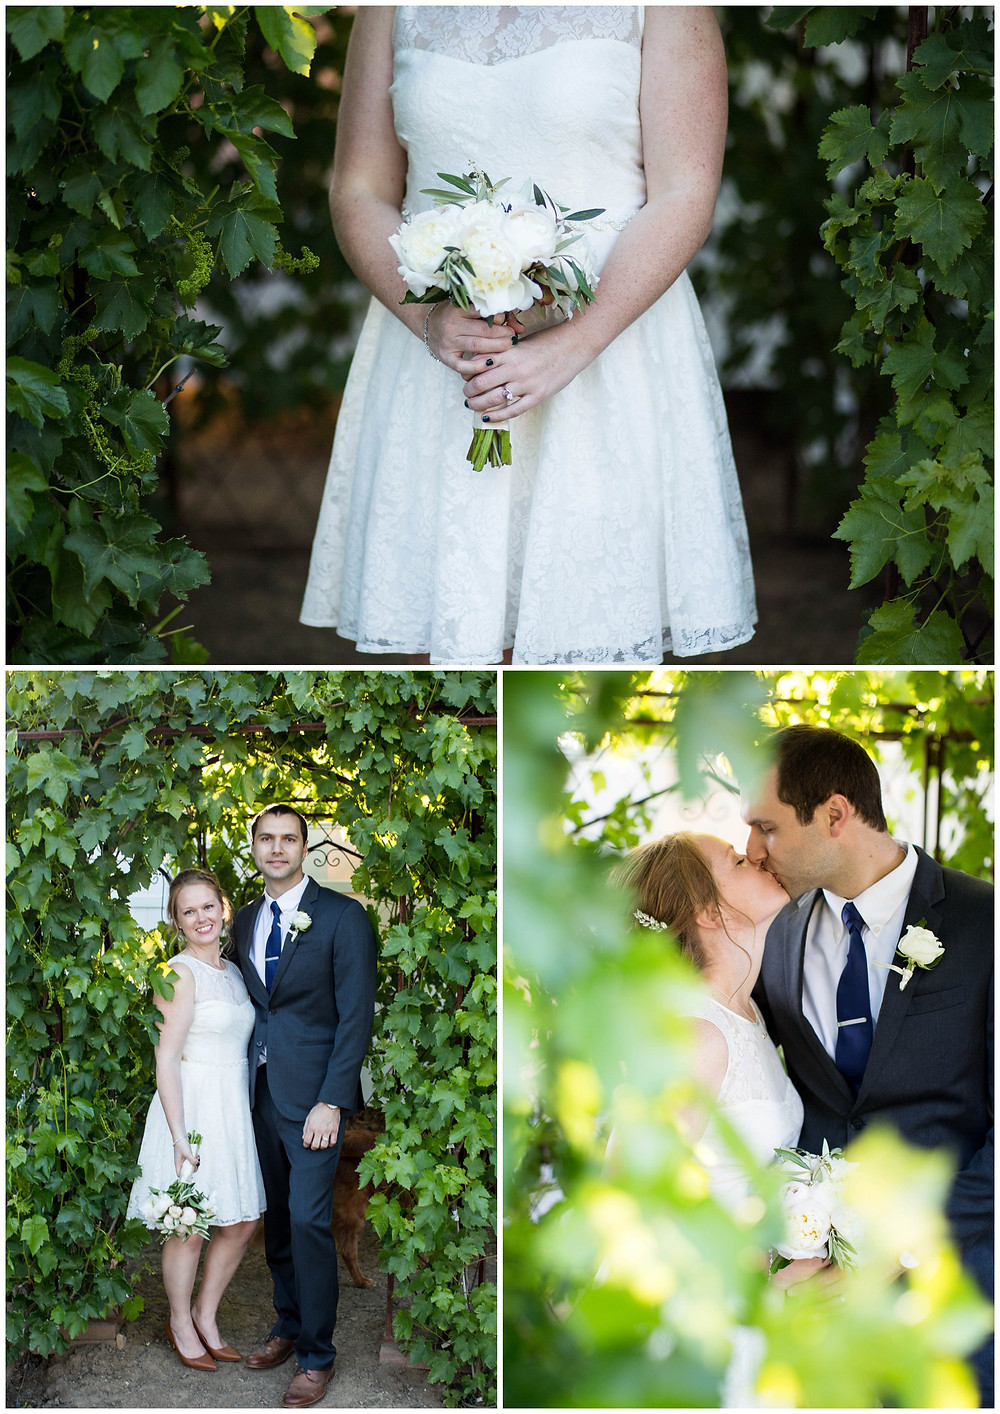 Surprise Wedding | Atascadero Wedding Photographer | Couple Portraits